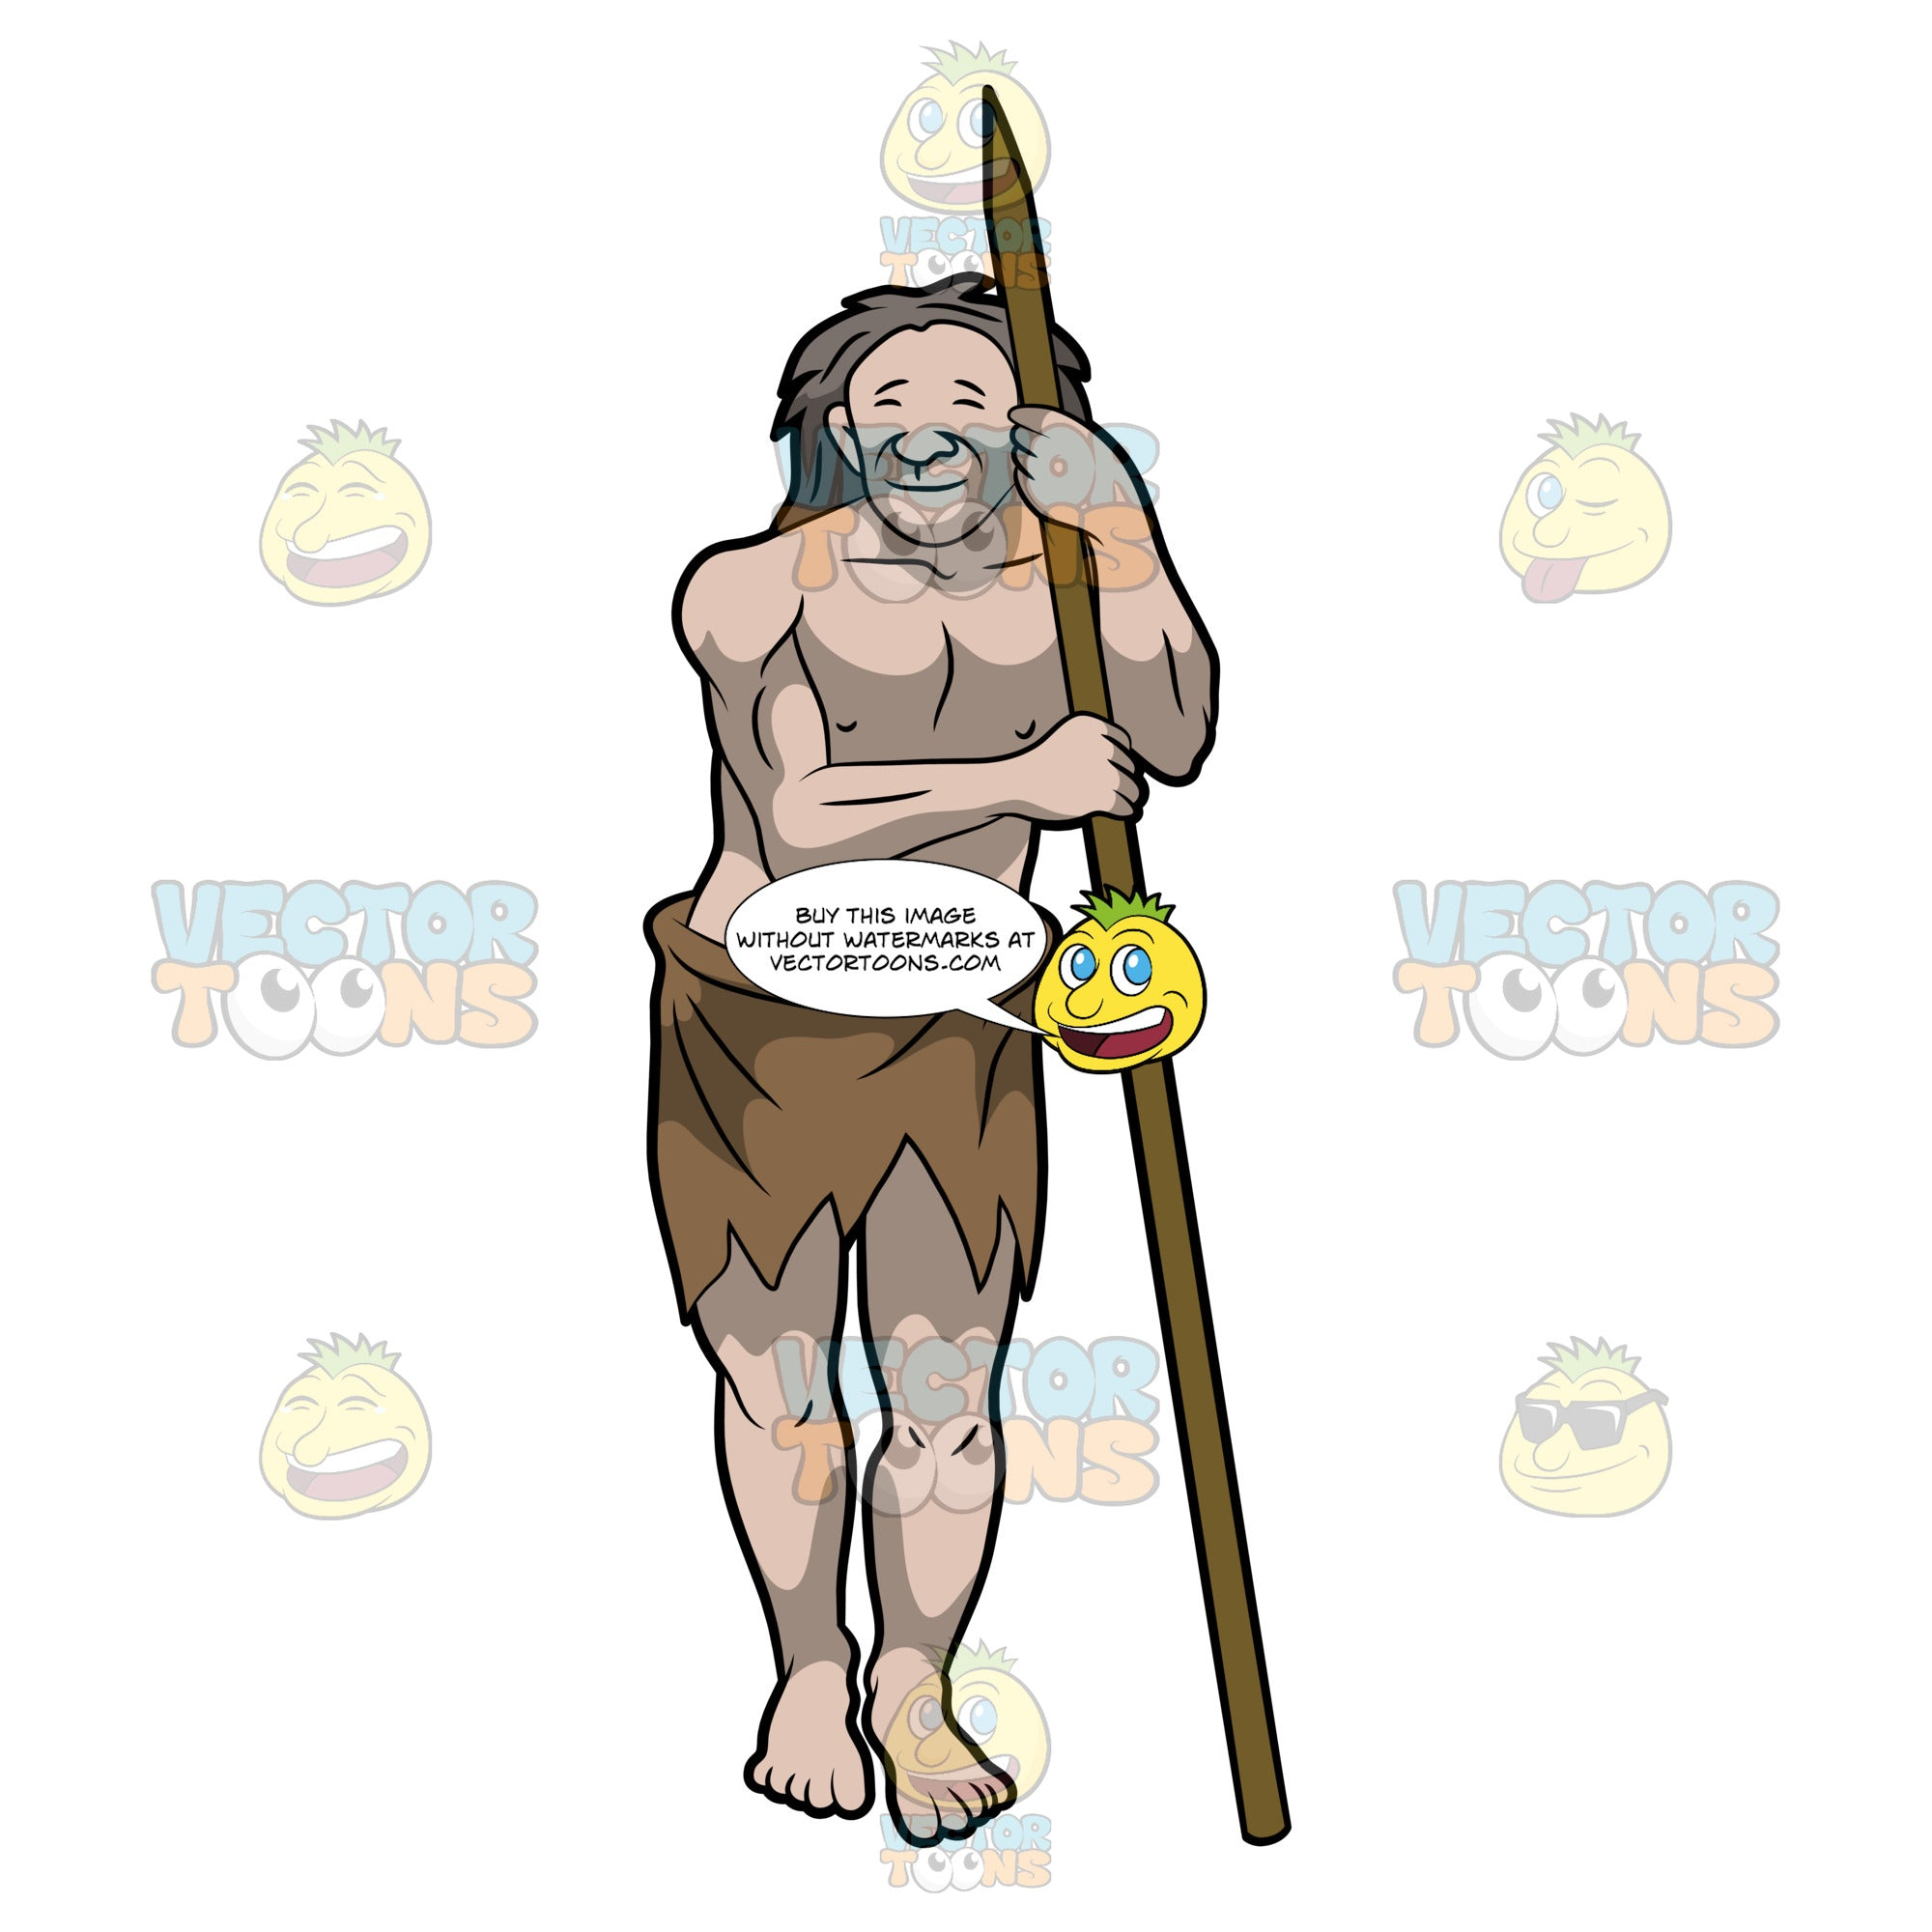 A Smiling Caveman Takes Time To Rest With His Long Spear